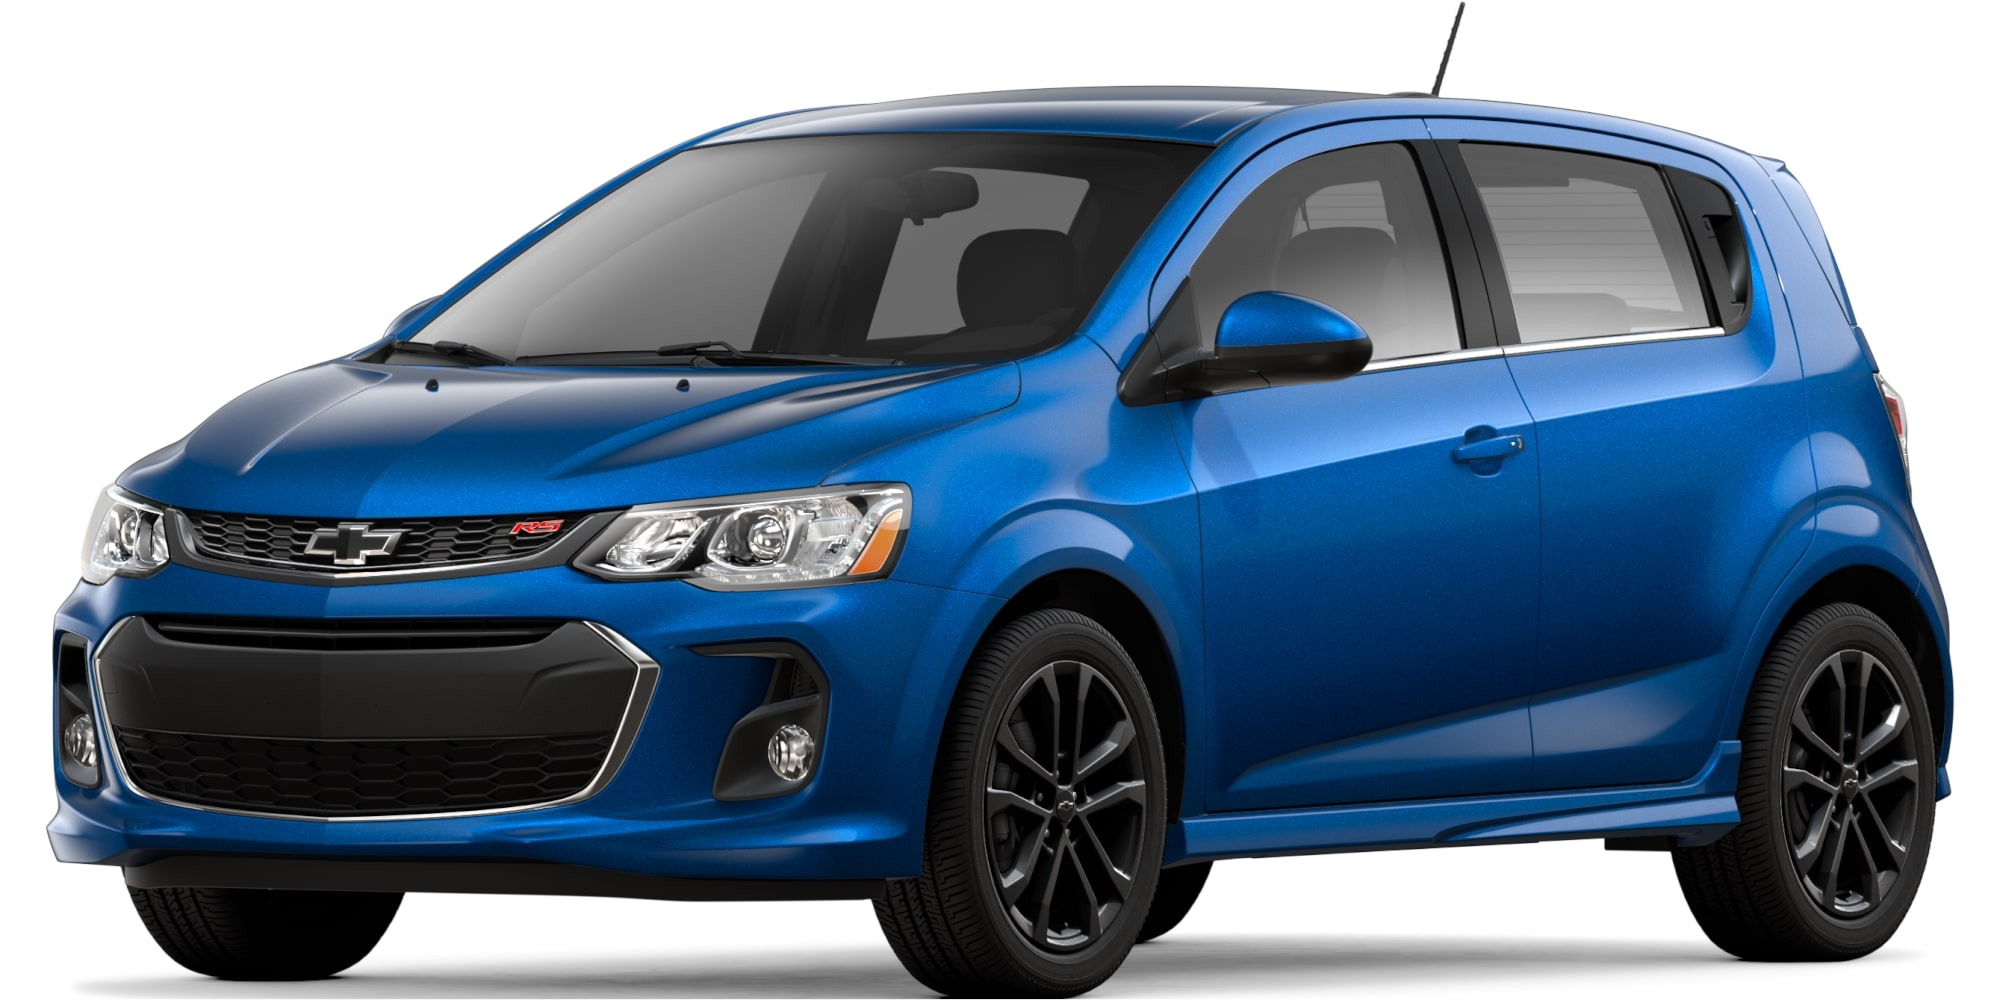 Chevrolet Sonic Owners Manual: Engine Exhaust